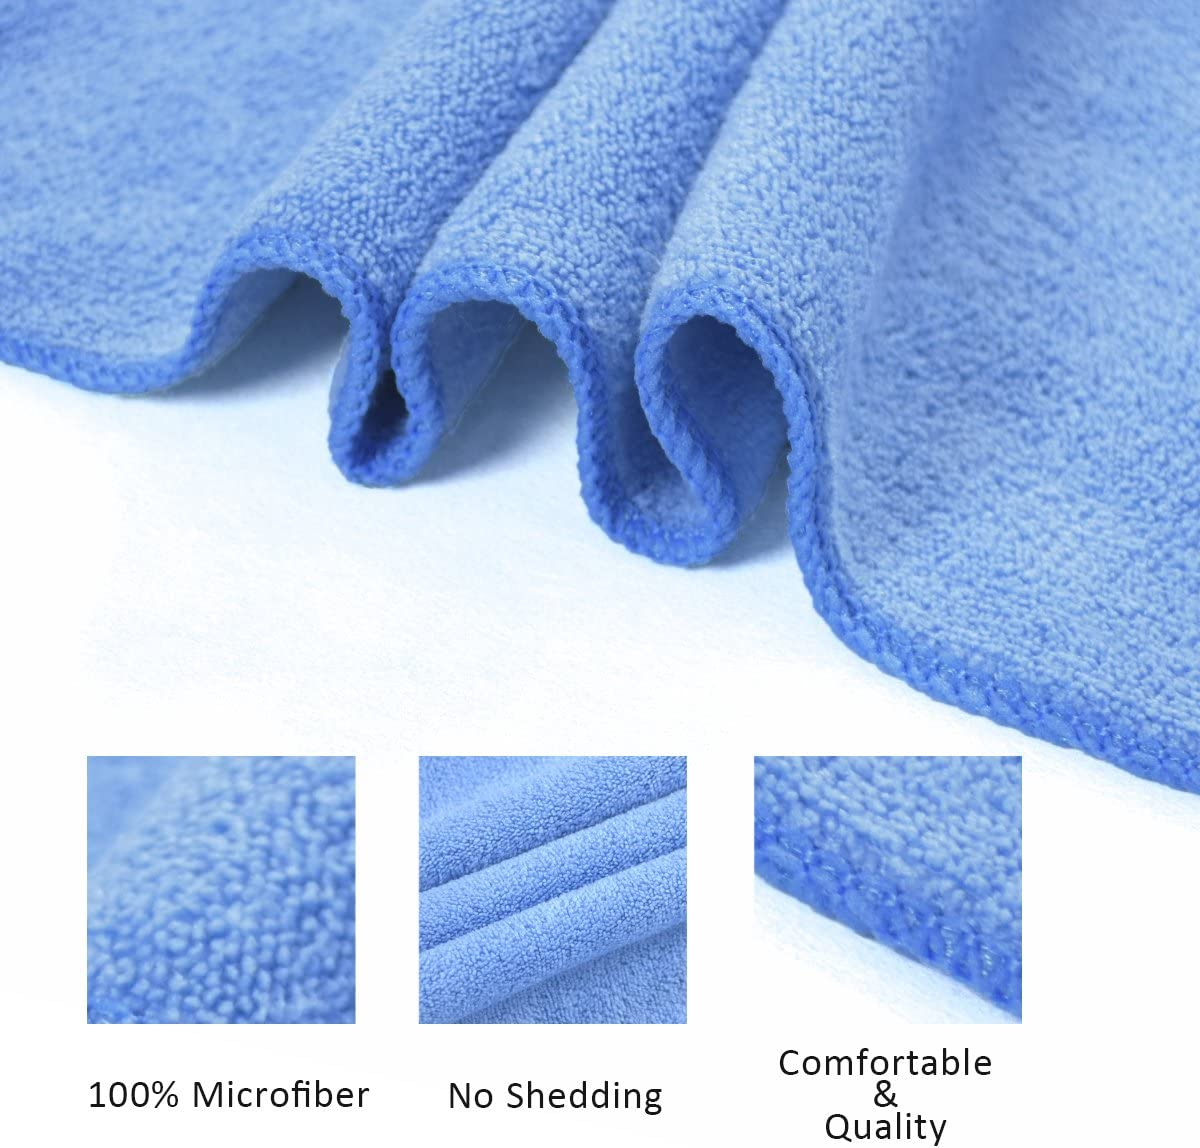 Travel Super Absorbent and Fast Drying Yoga Sky Blue Bath Towel 3 Pack 27 x 55 JML Microfiber Bath Towels Soft Multipurpose Use for Sports Fitness